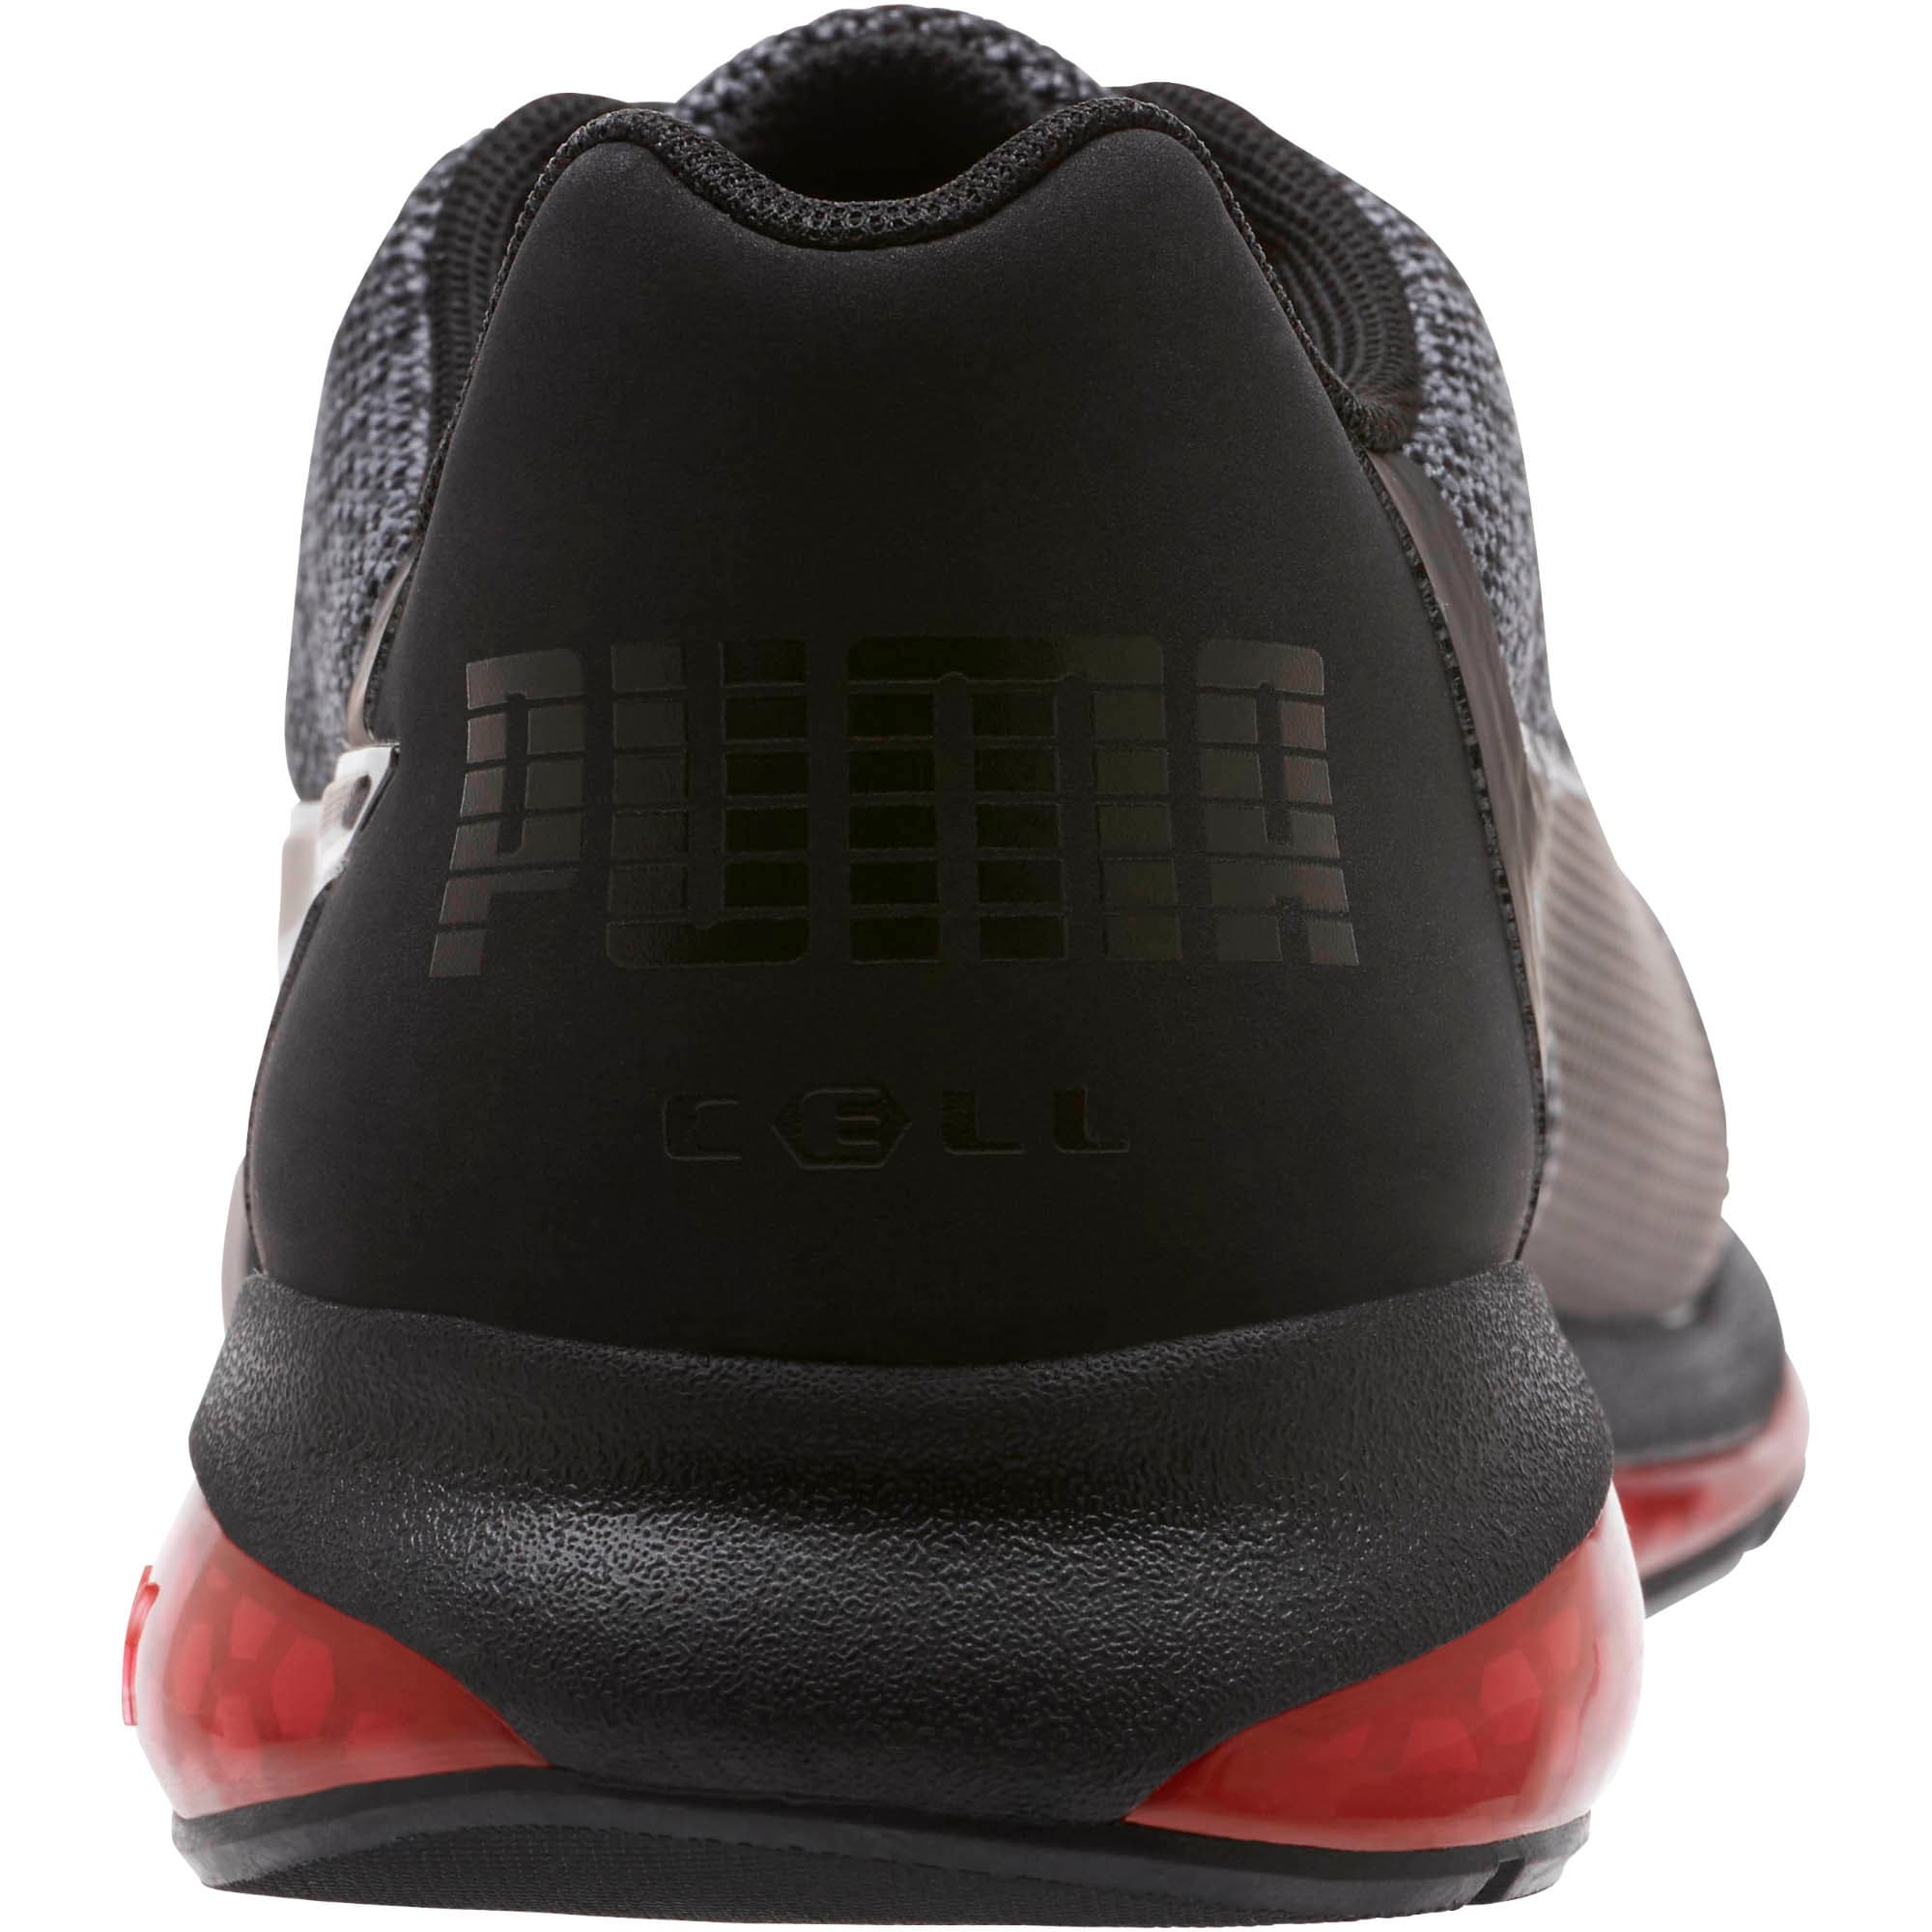 Thumbnail 3 of CELL Ultimate Knit Training Shoes, Pma Blk-QUIET SHDE-Rbbon Red, medium